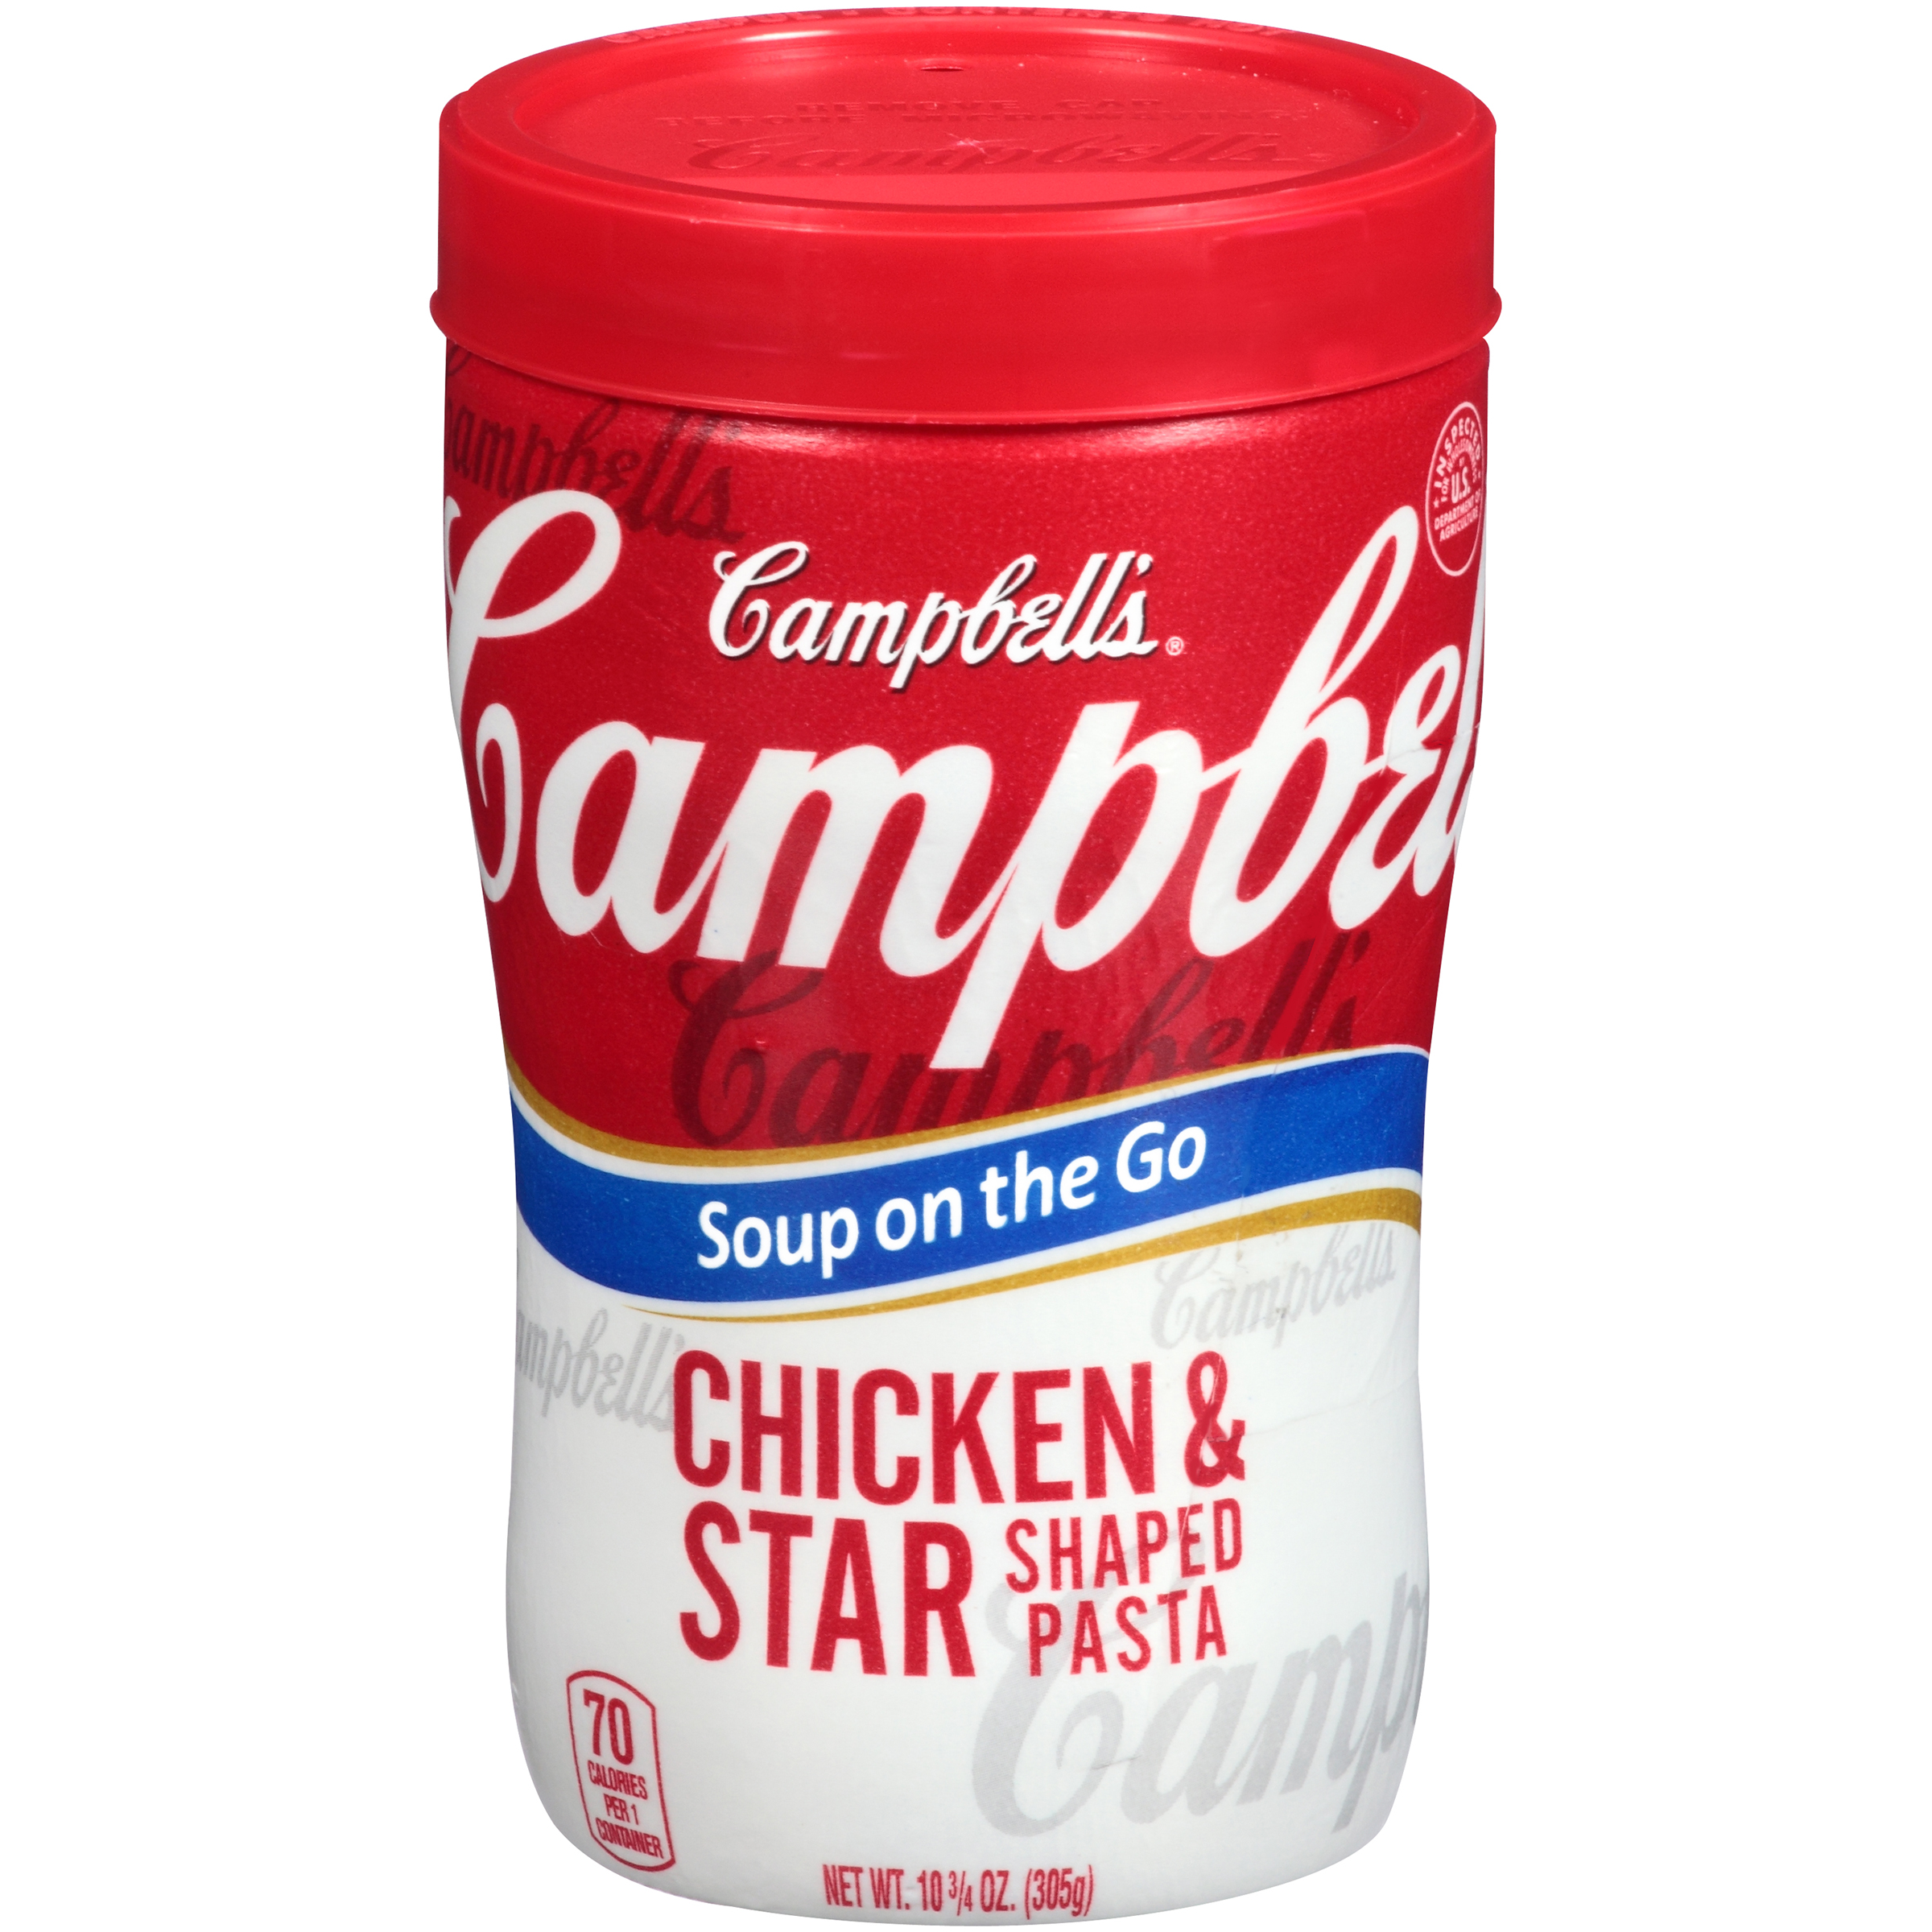 Campbell's Soup on the Go Chicken & Star Shaped Pasta 10.75oz